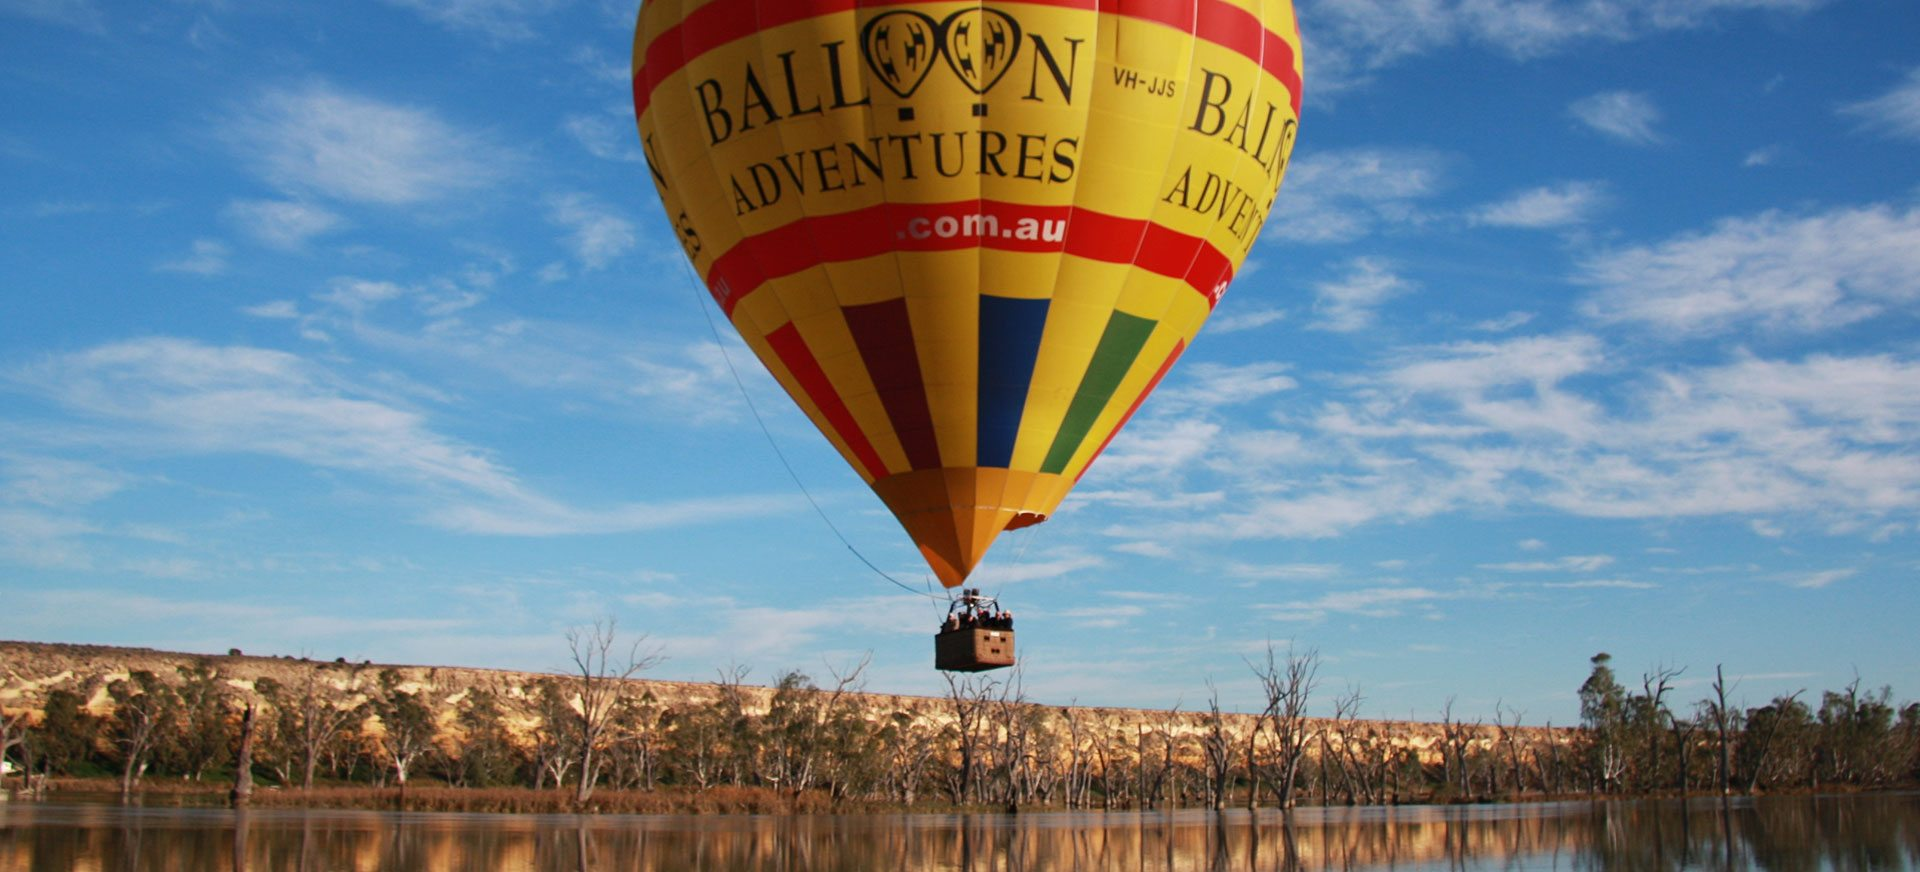 balloon-adventures-barossa-valley-hot-air-balloon-flights-over-the-river-murray-3